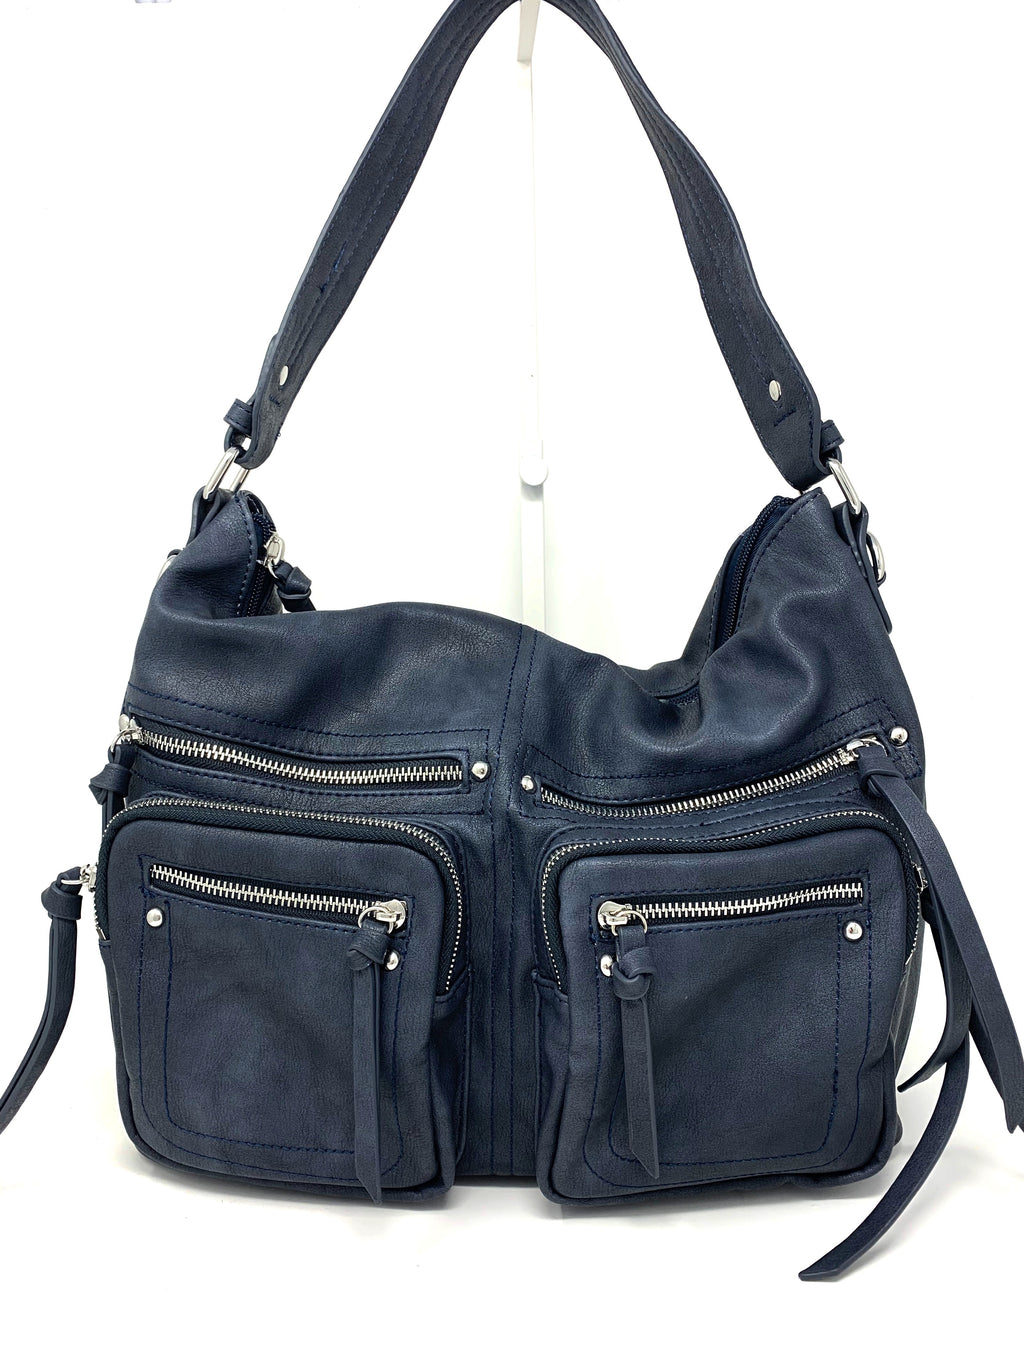 The Michelle Cargo Bag in Navy